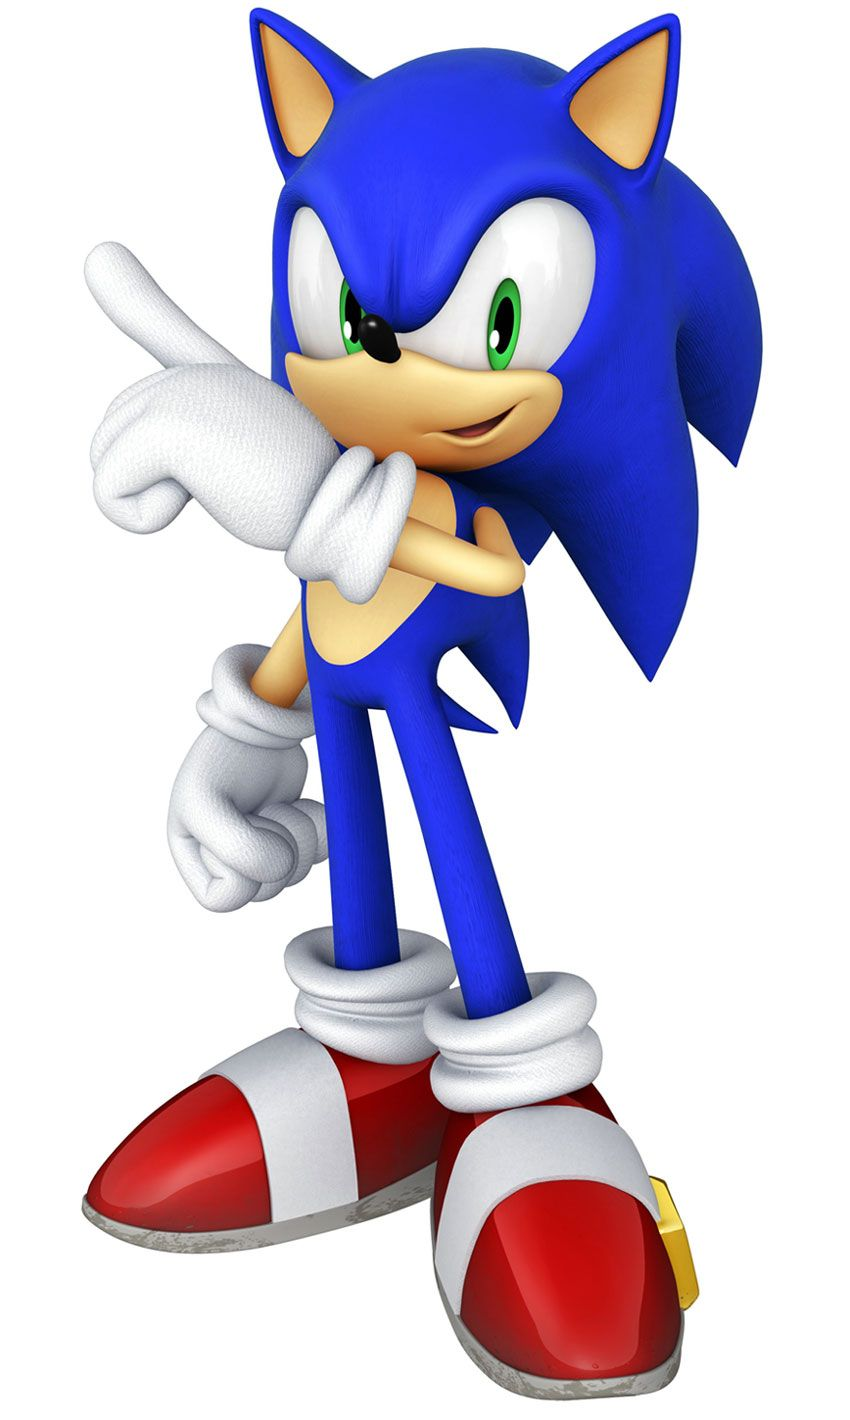 Sonic The Hedgehog Art Galeria De Arte Transformado De Sonic All Stars Racing In 2021 Sonic The Hedgehog Sonic Hedgehog Art